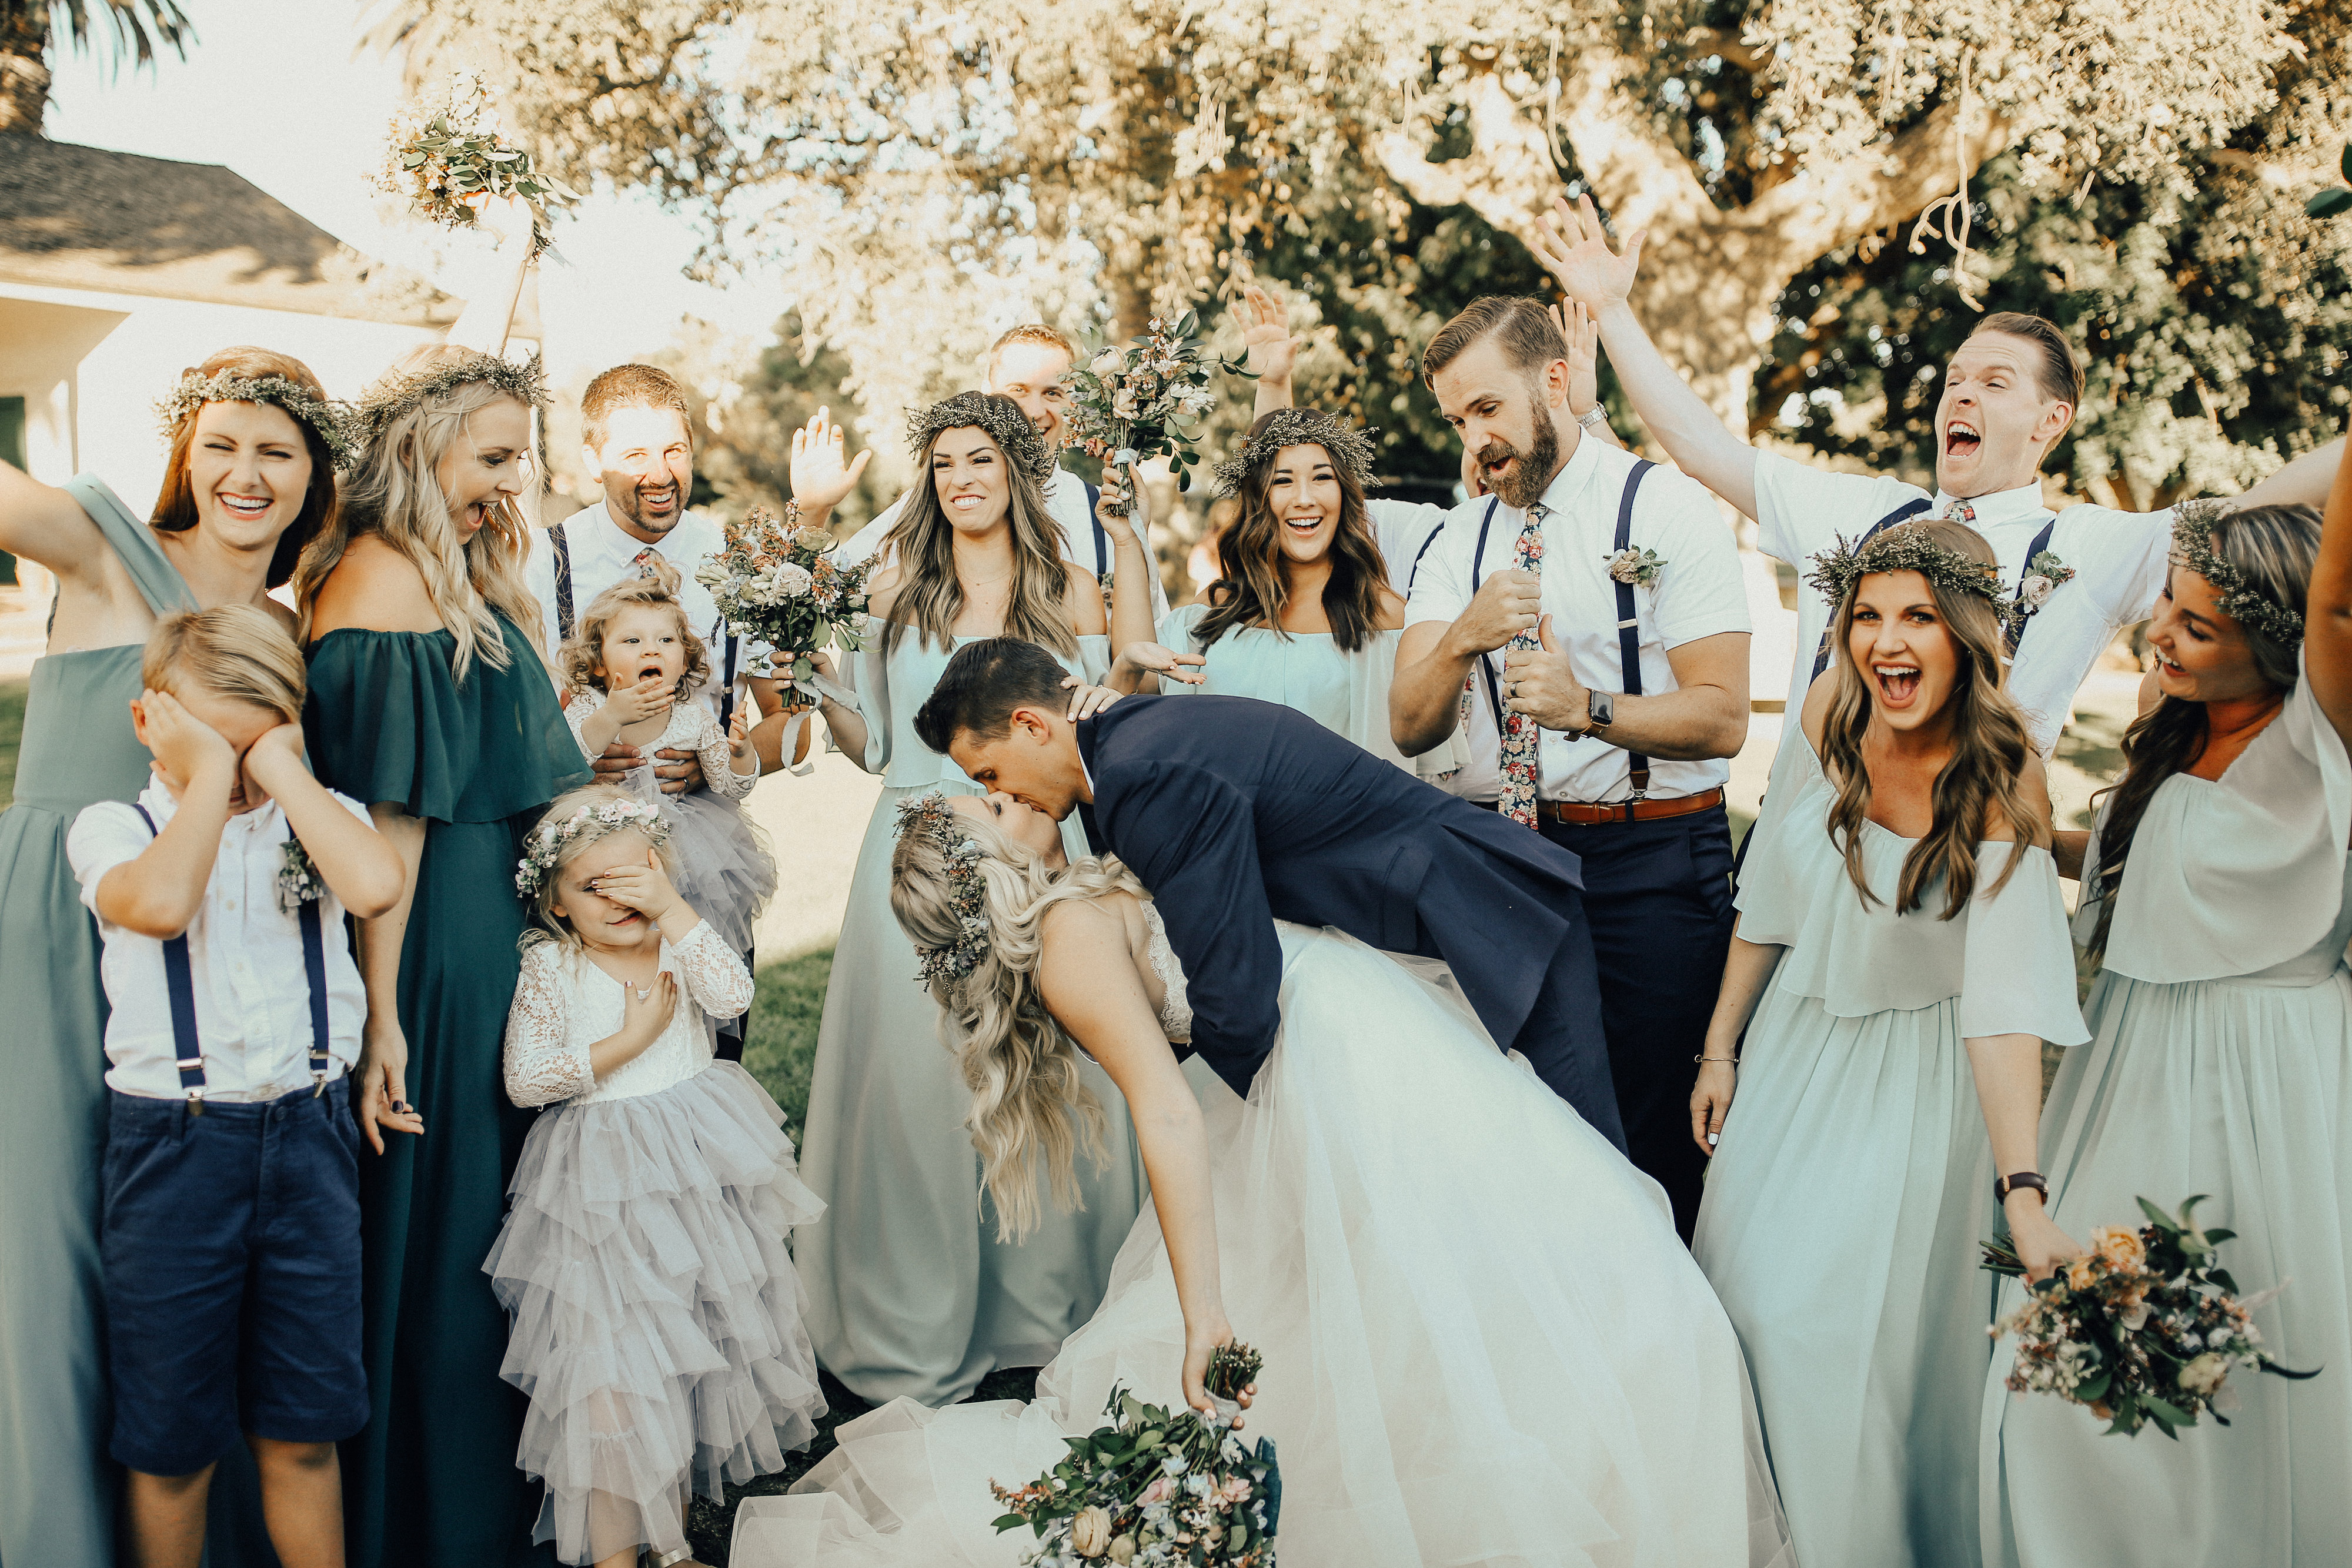 Bride and groom kiss after wedding ceremony as wedding party and guests cheer and flower girl covers her eyes